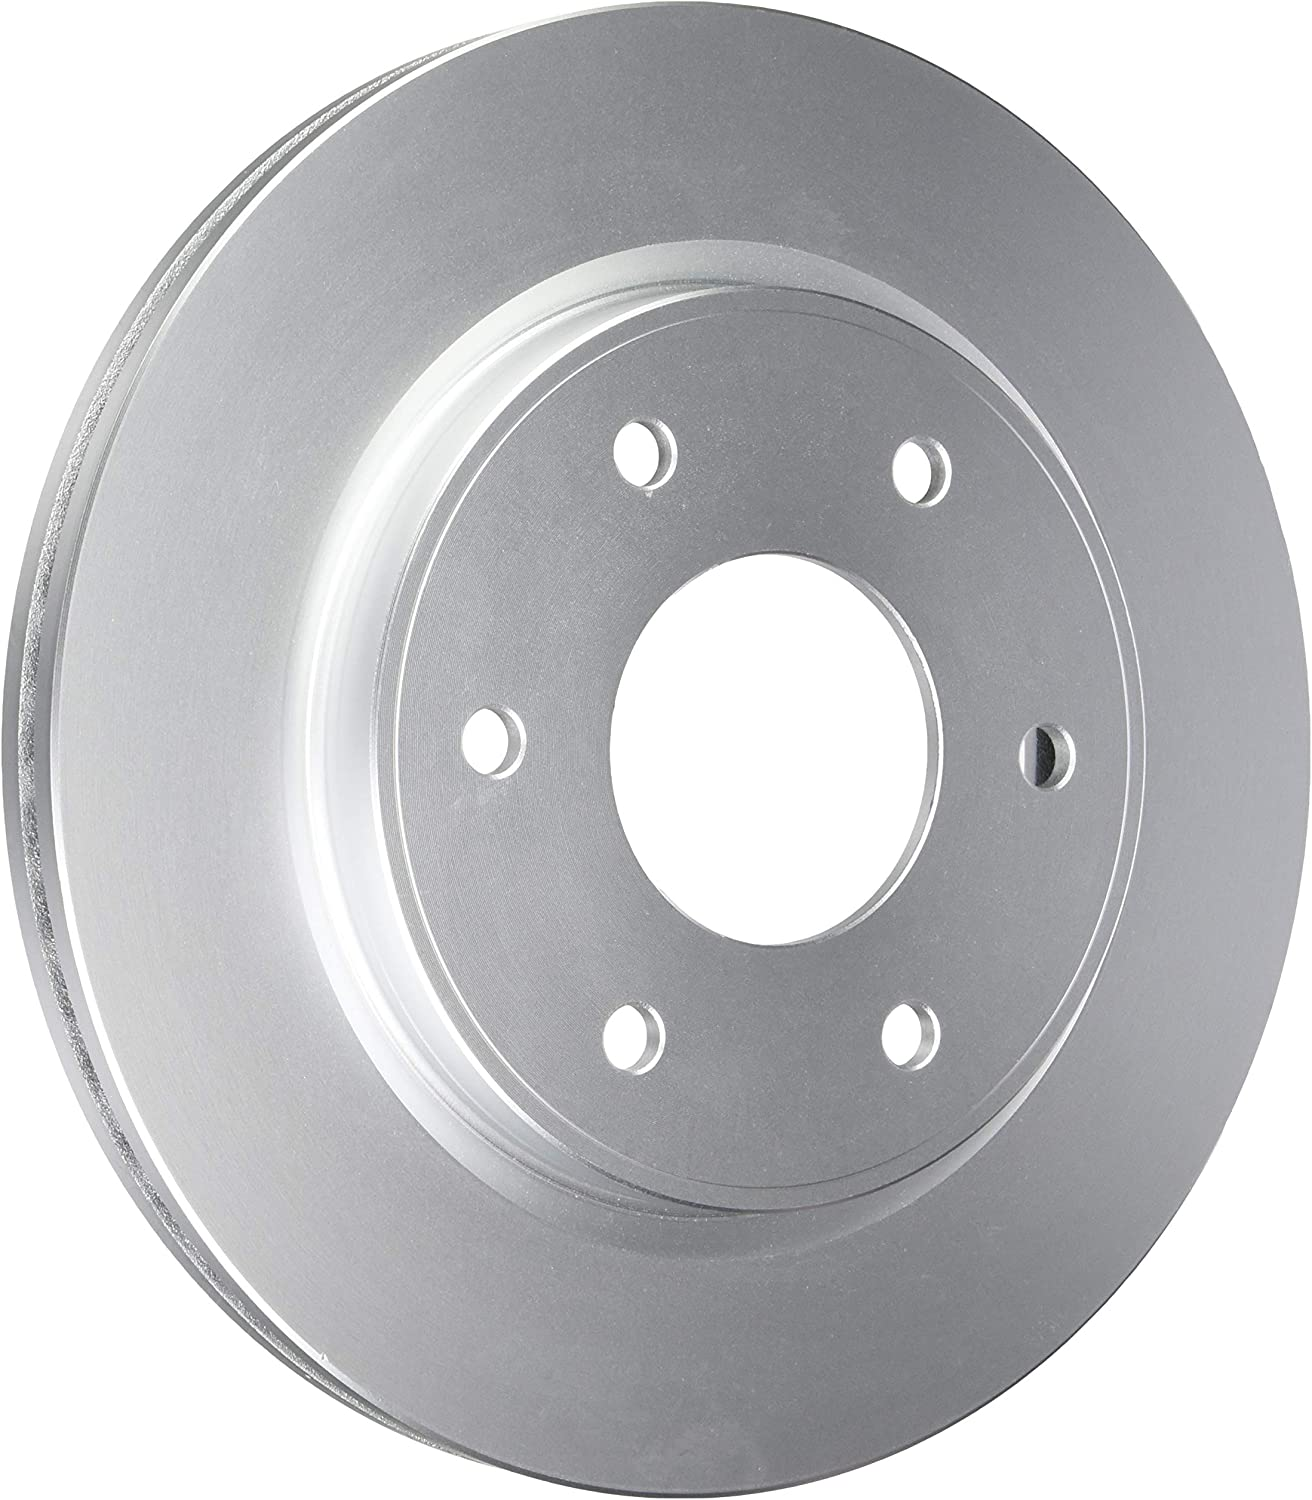 Raybestos 980424FZN Rust Prevention Brak 40% Outlet SALE OFF Cheap Sale Coated Technology Rotor